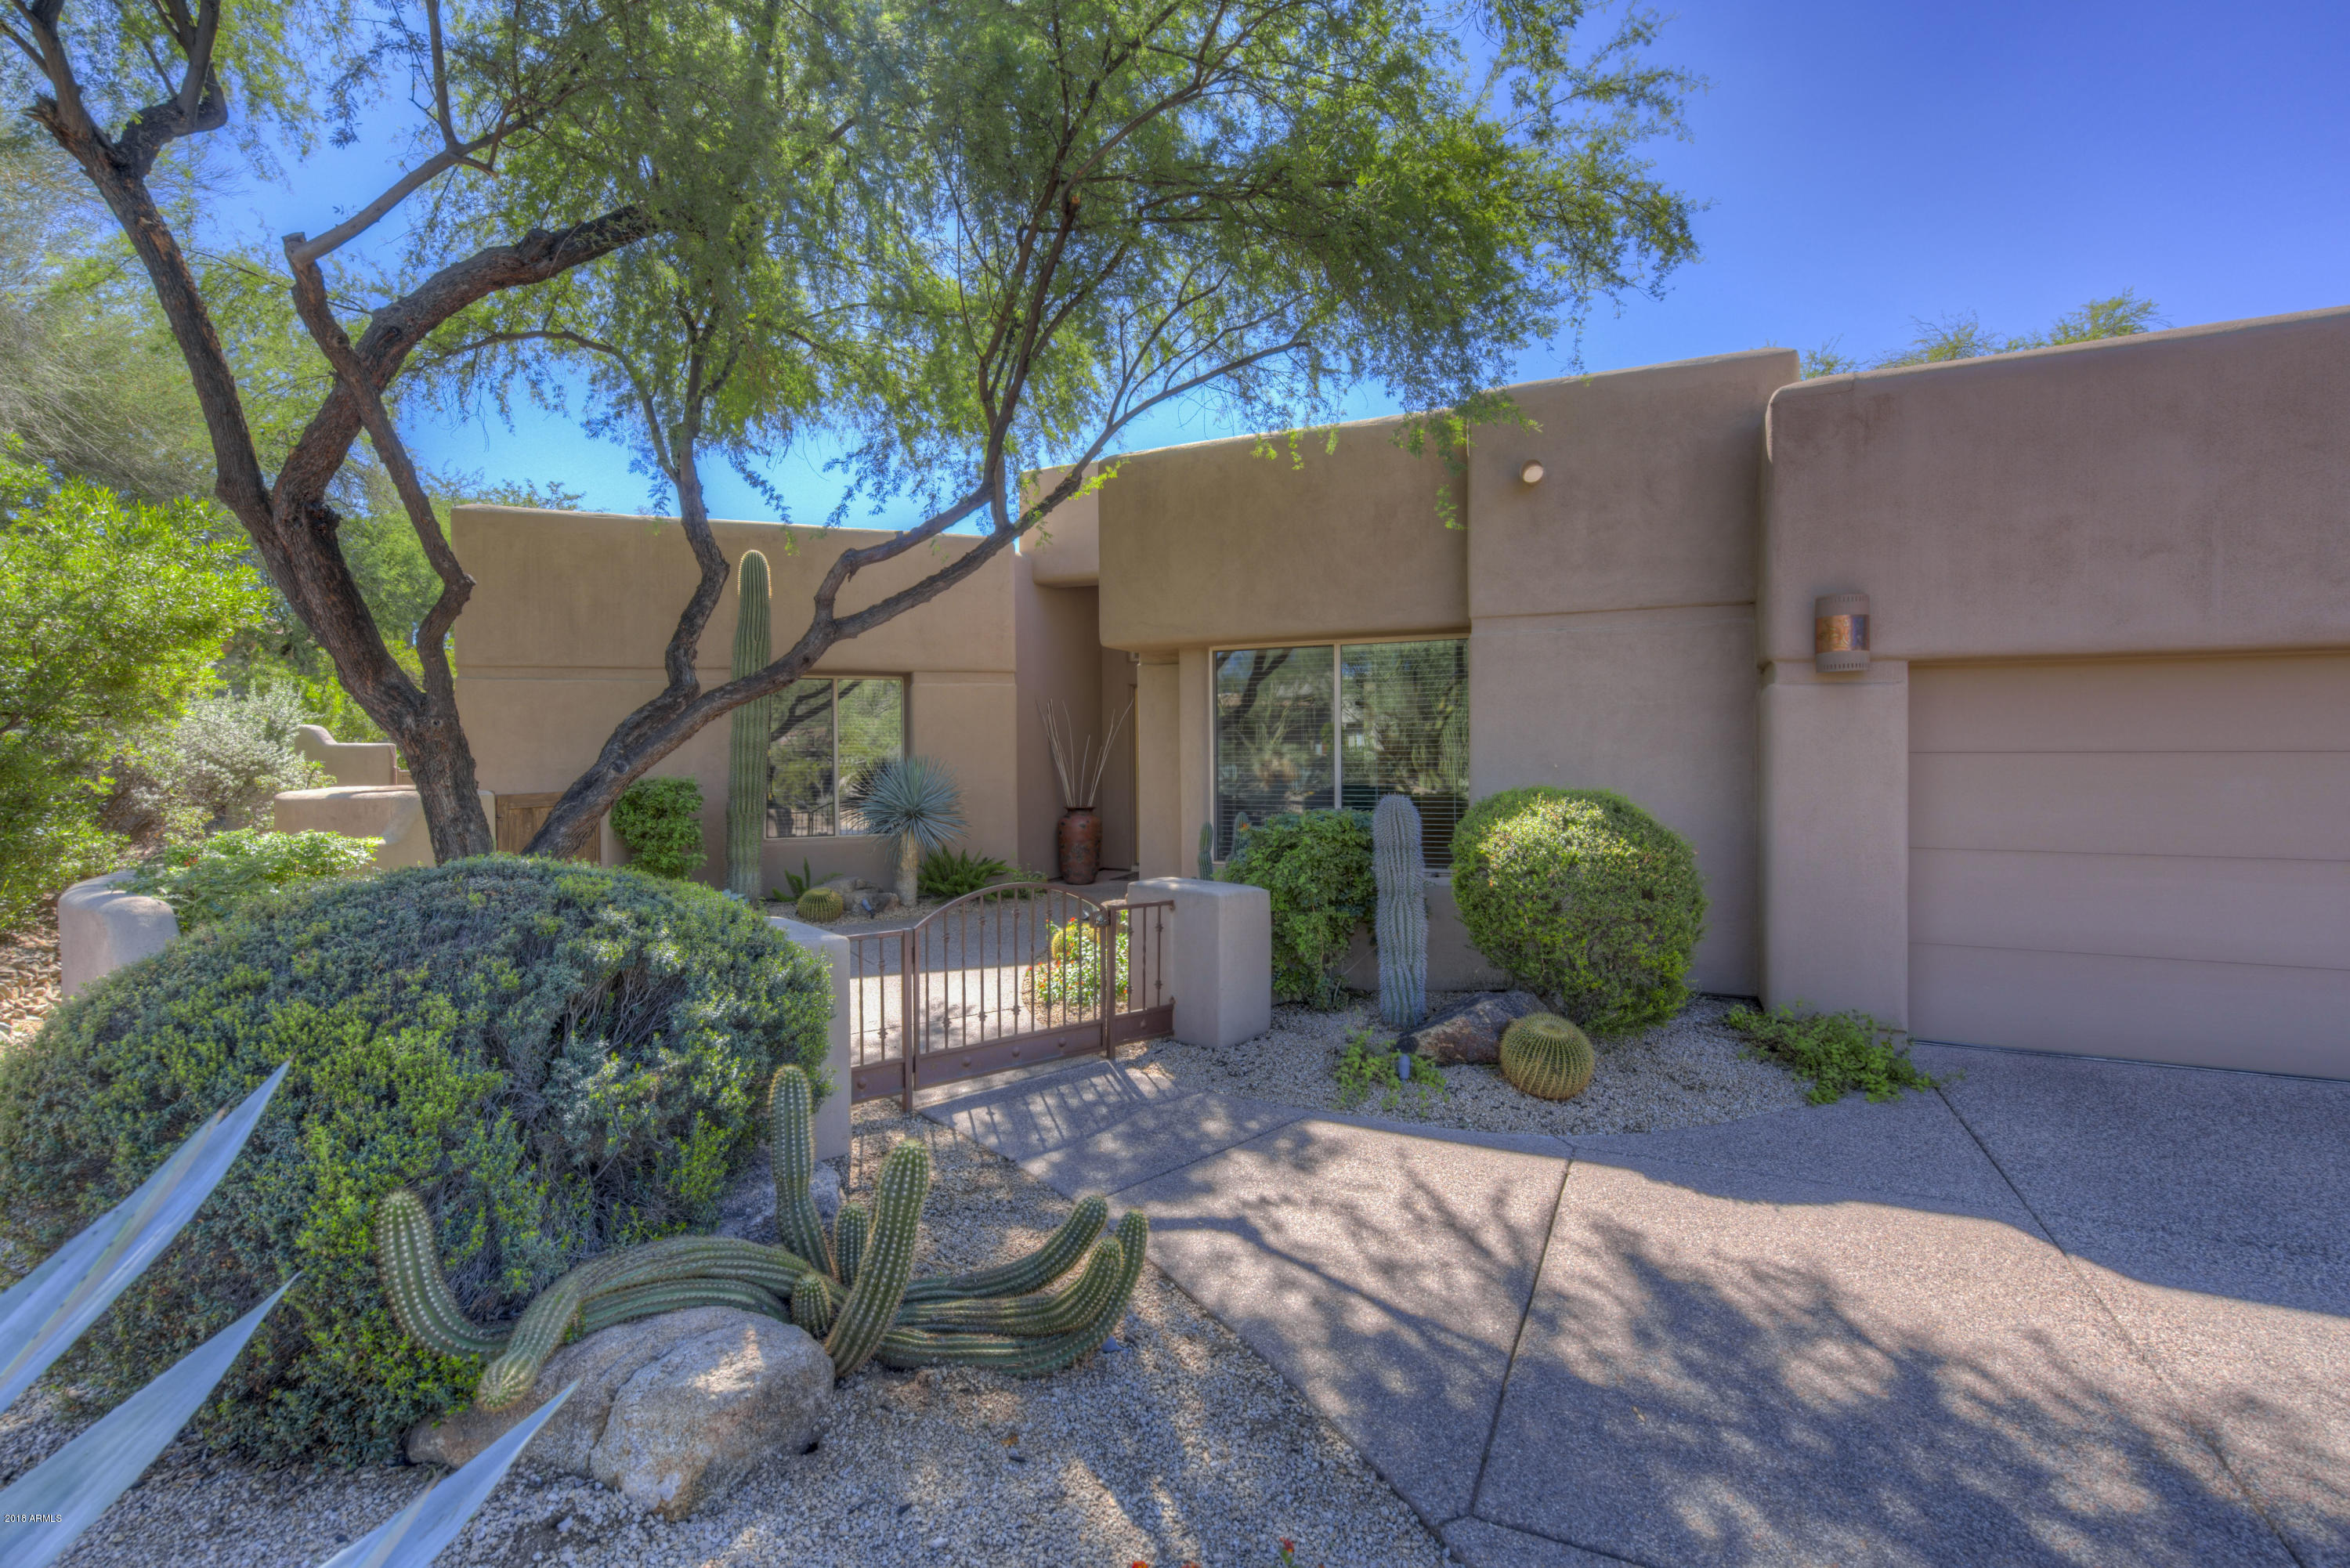 MLS 5832563 7415 E High Point Drive, Scottsdale, AZ 85266 Scottsdale AZ The Boulders